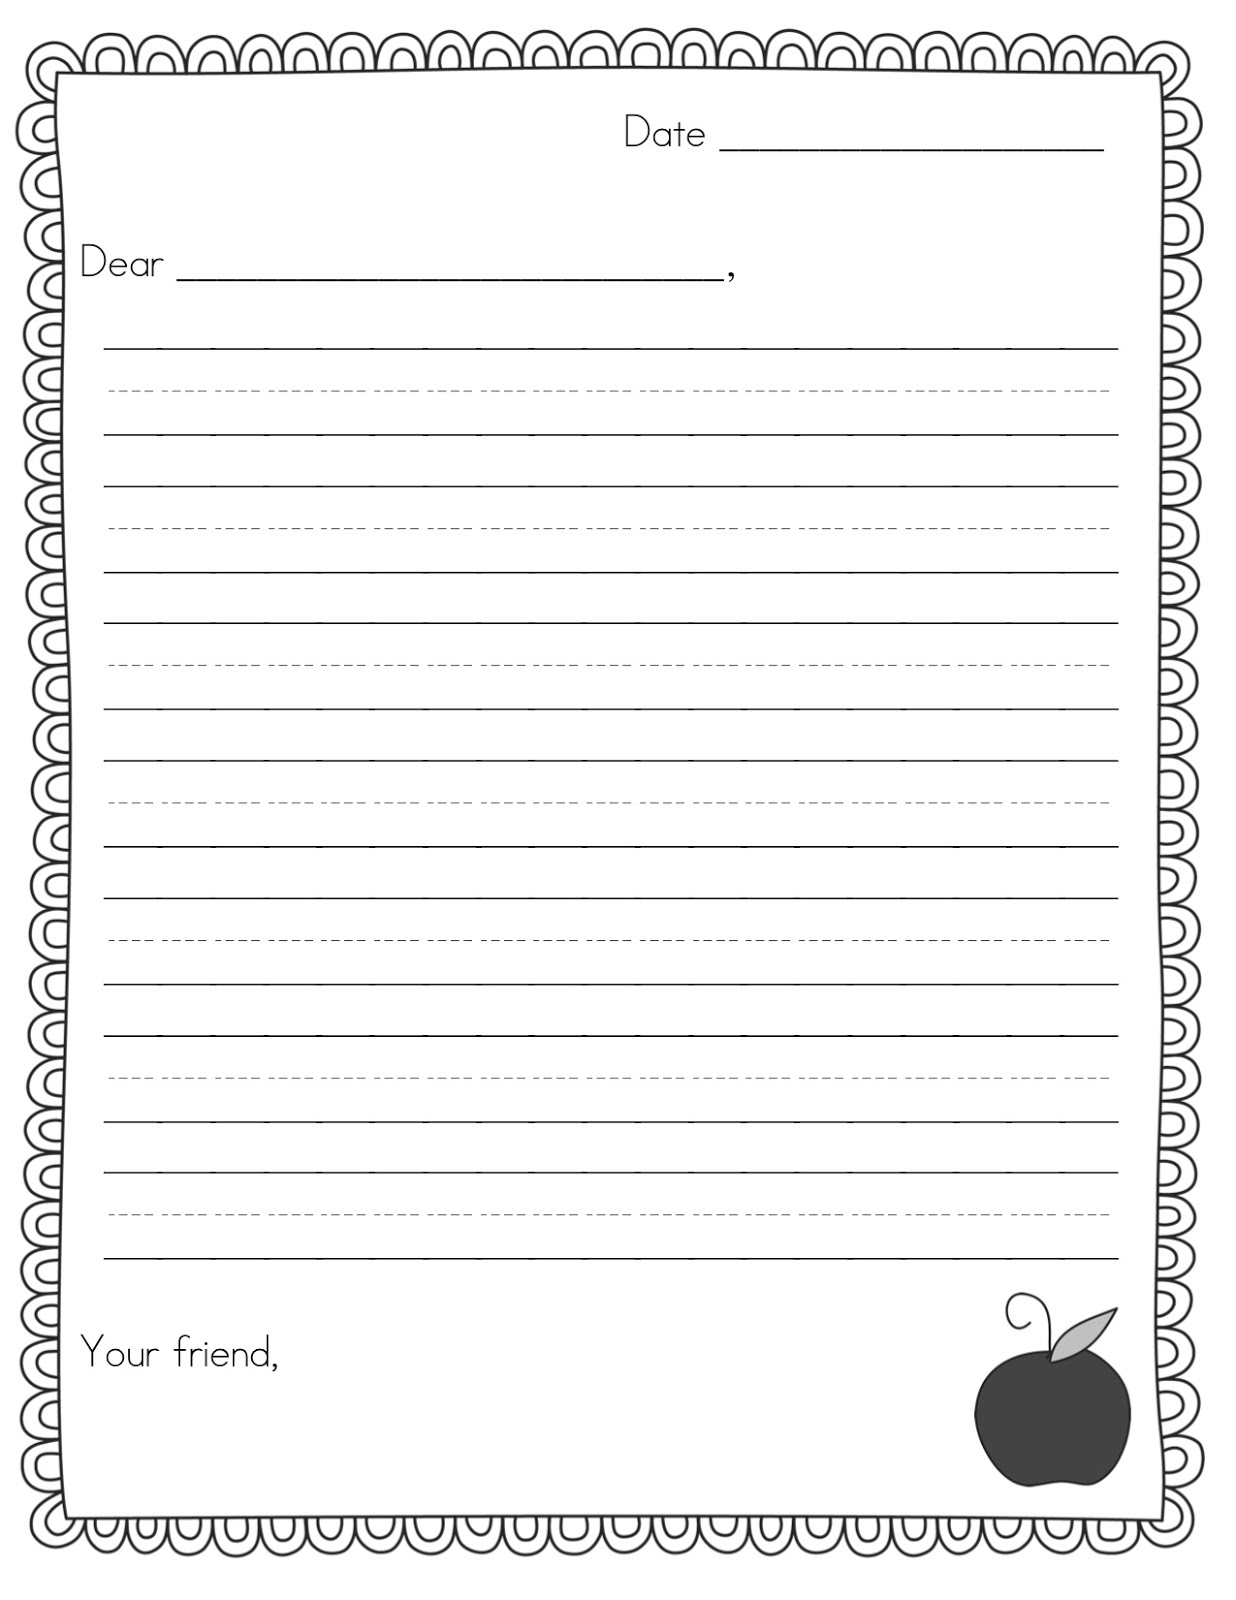 Pen pal news friendly letter freebie teacher idea factory click here to get these free letter templates thanks to jw illustrations fonts for teachers fancy dog spiritdancerdesigns Gallery